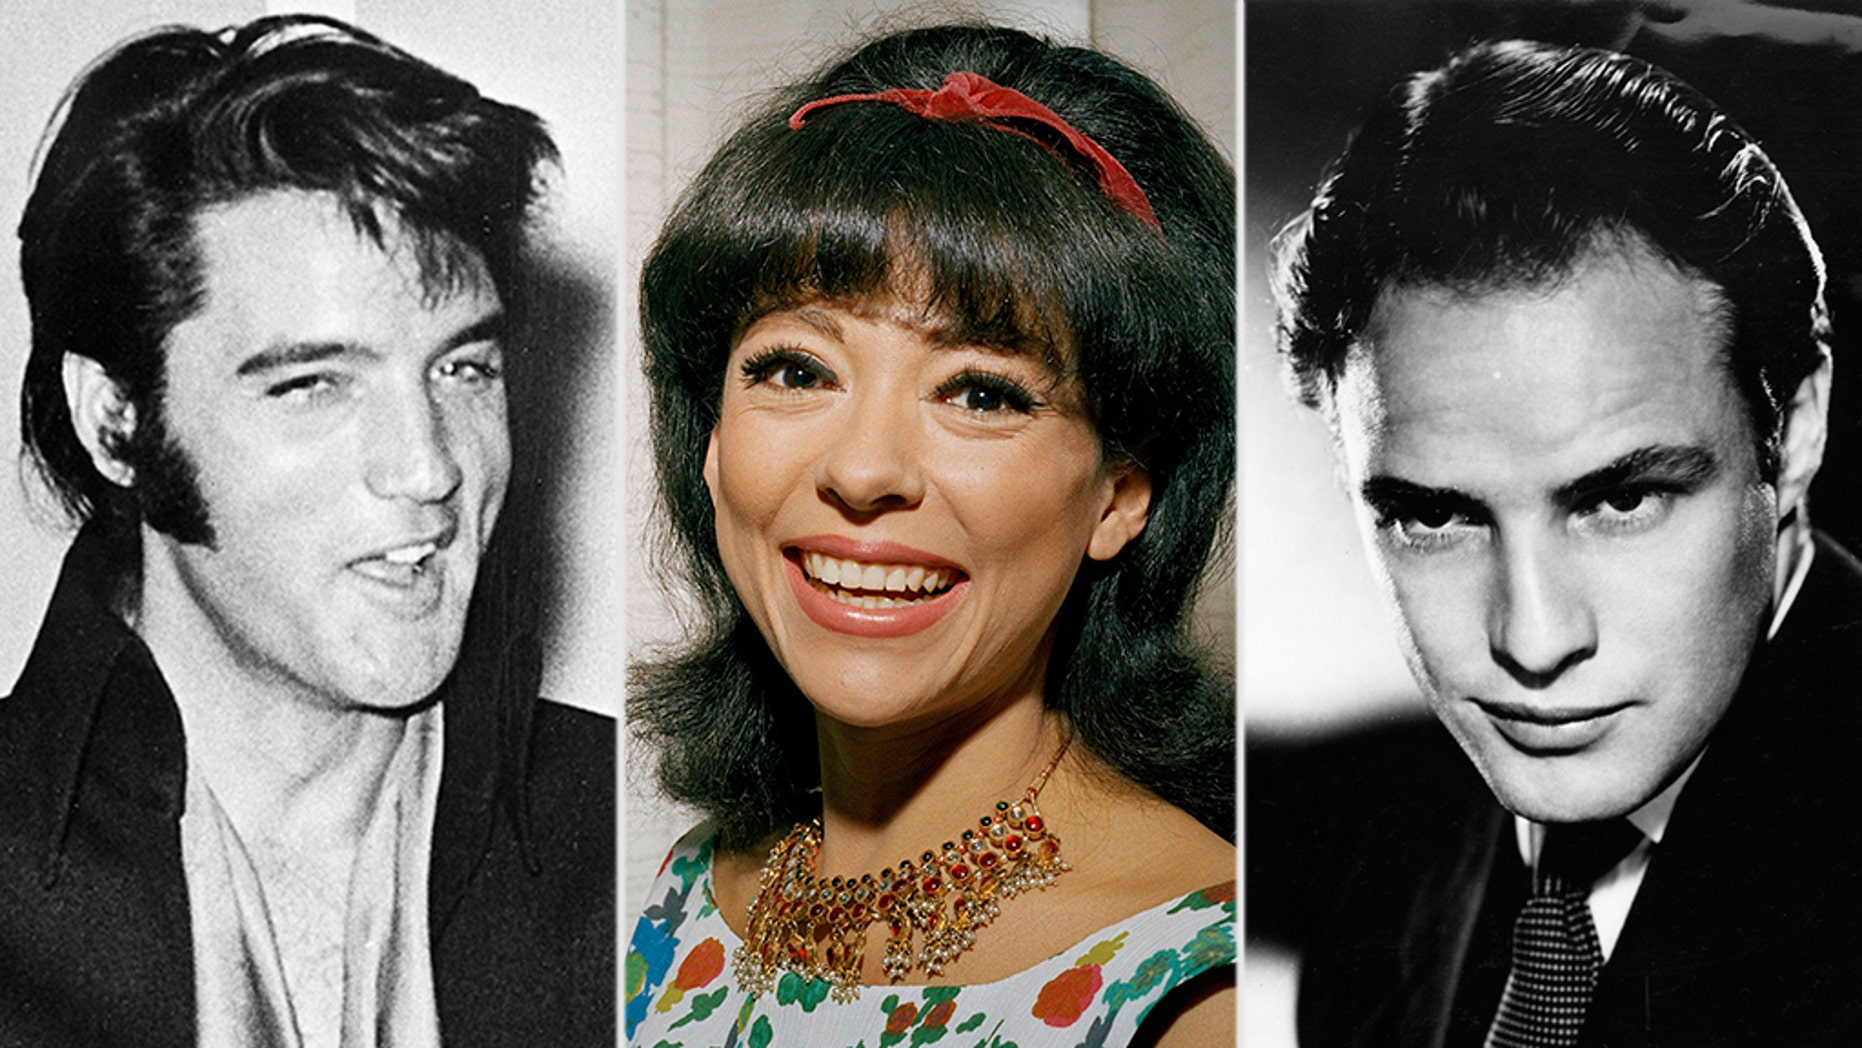 """Rita Moreno (center) of """"West Side Story"""" fame claimed that Marlon Brando (right) was a better lover in bed than Elvis Presley."""